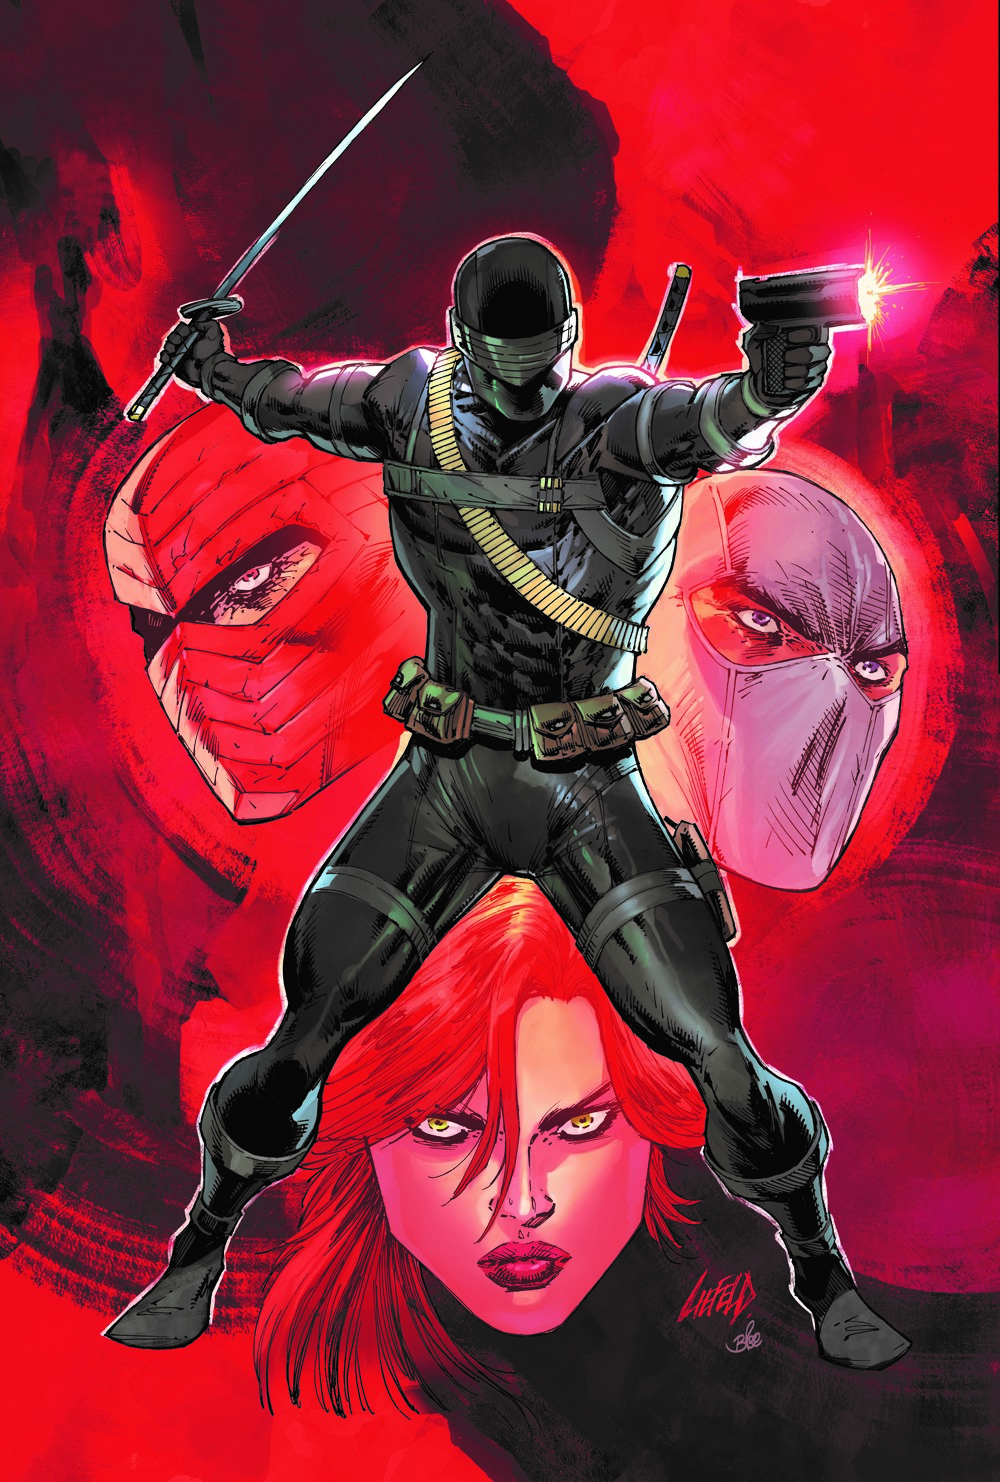 SnakeEyes_DG_TPB-2 IDW Publishing October 2021 Solicitations